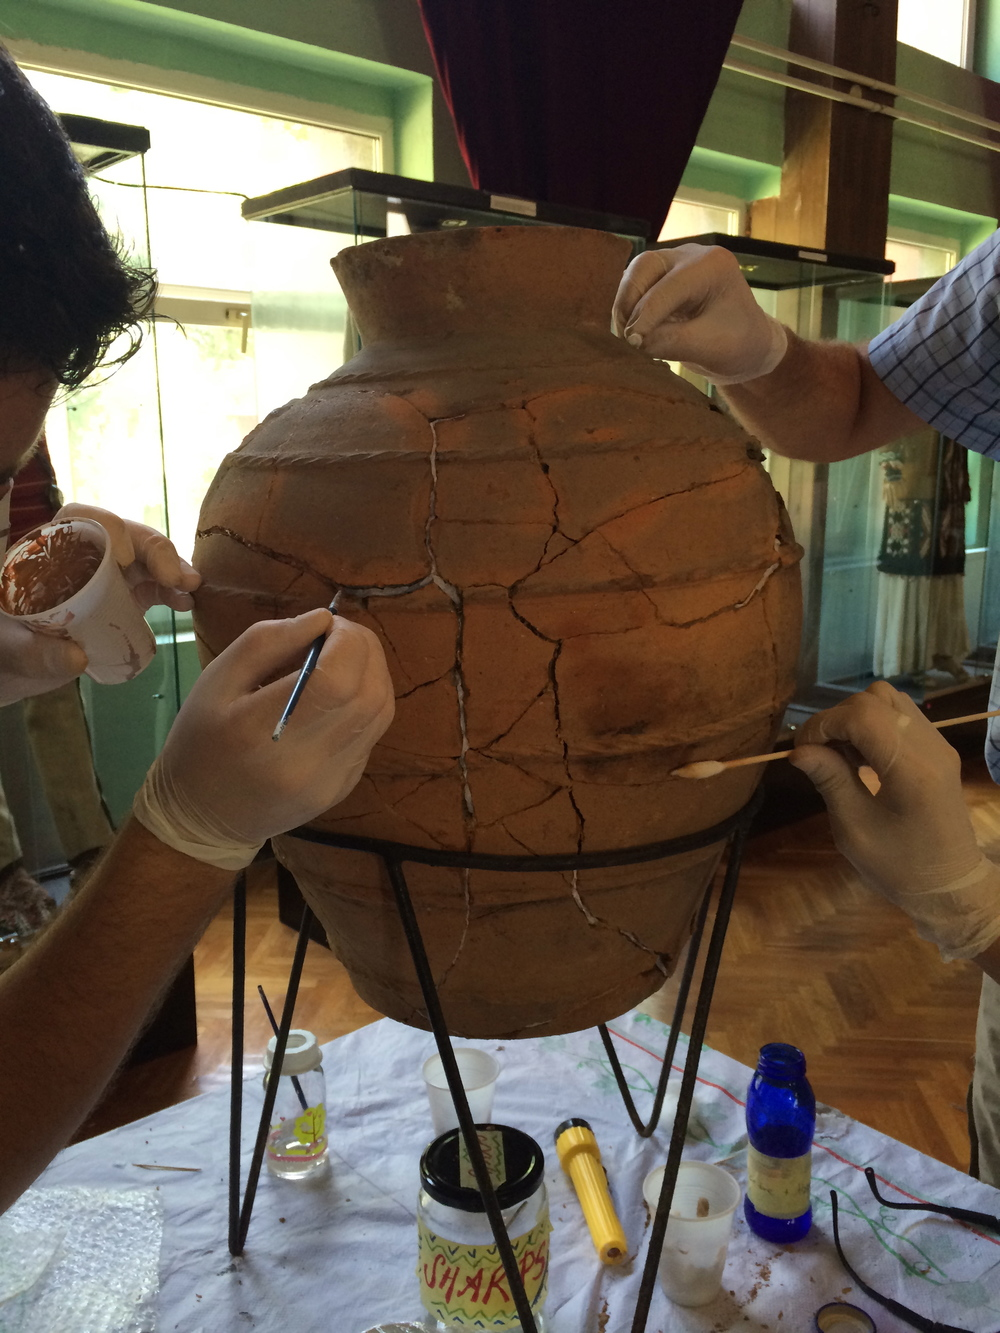 Making last minute touches to the earthenware pithos